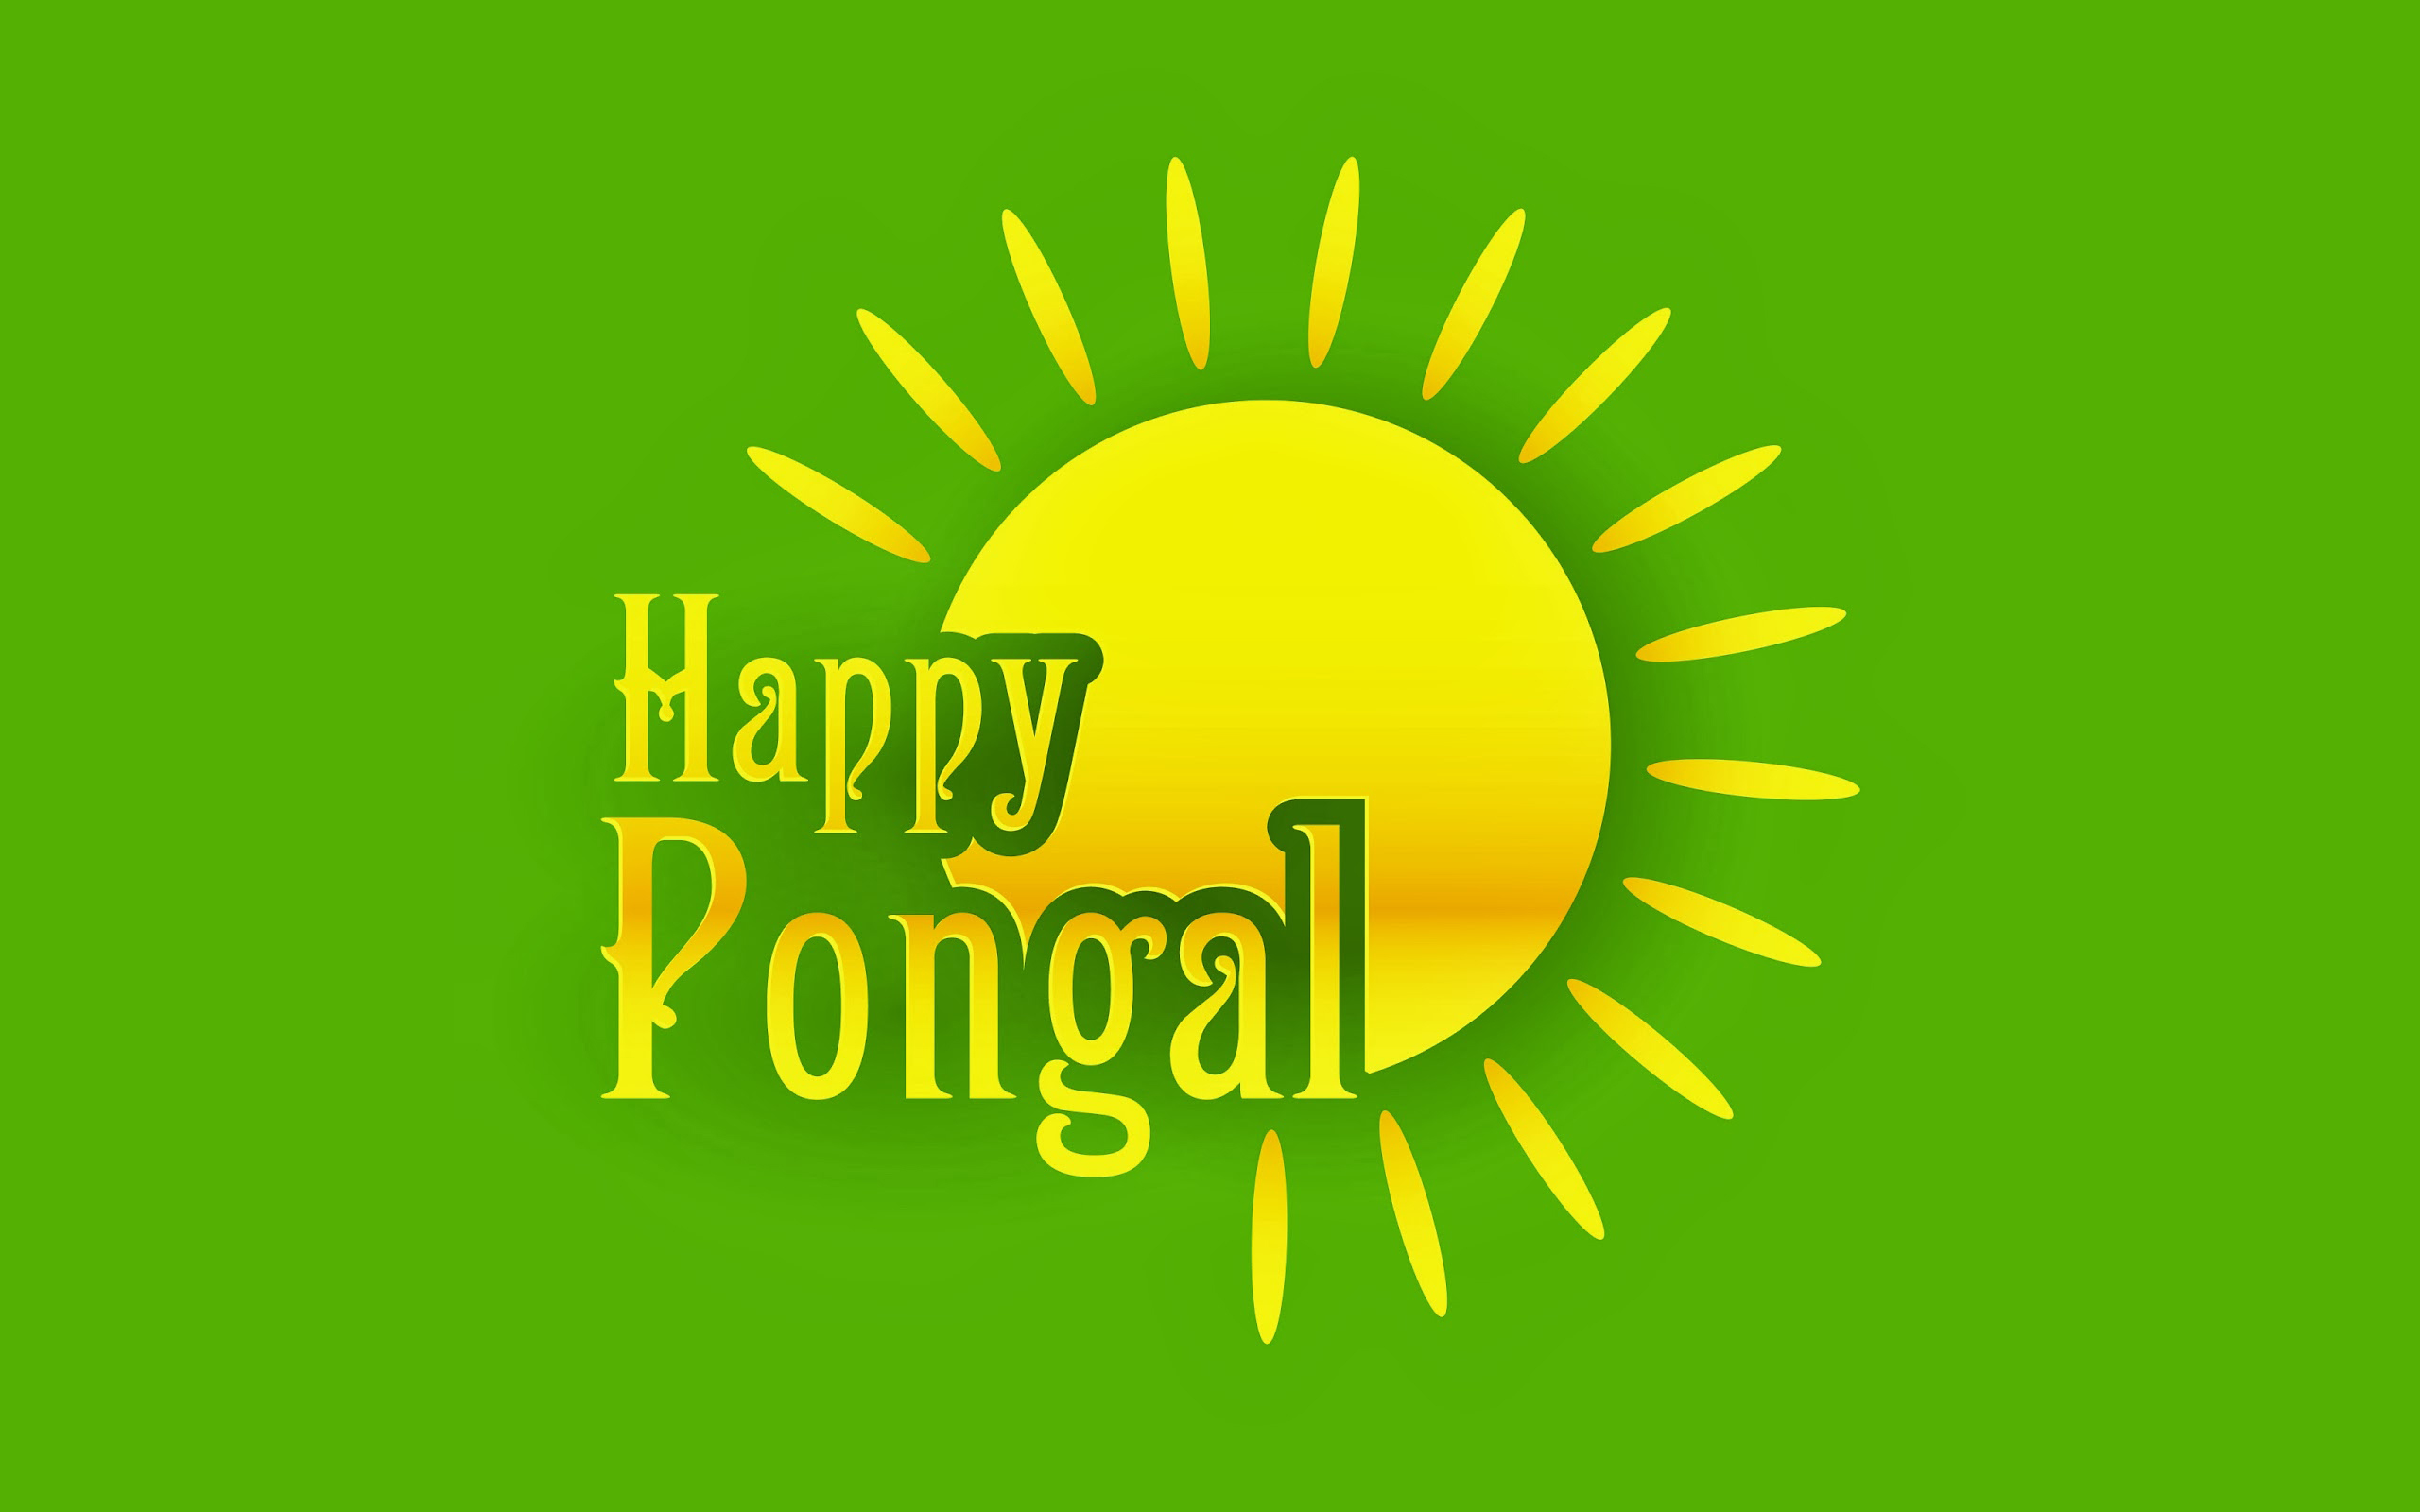 Happy Pongal Messages Of 2018 Greetings And Wishes Techicy